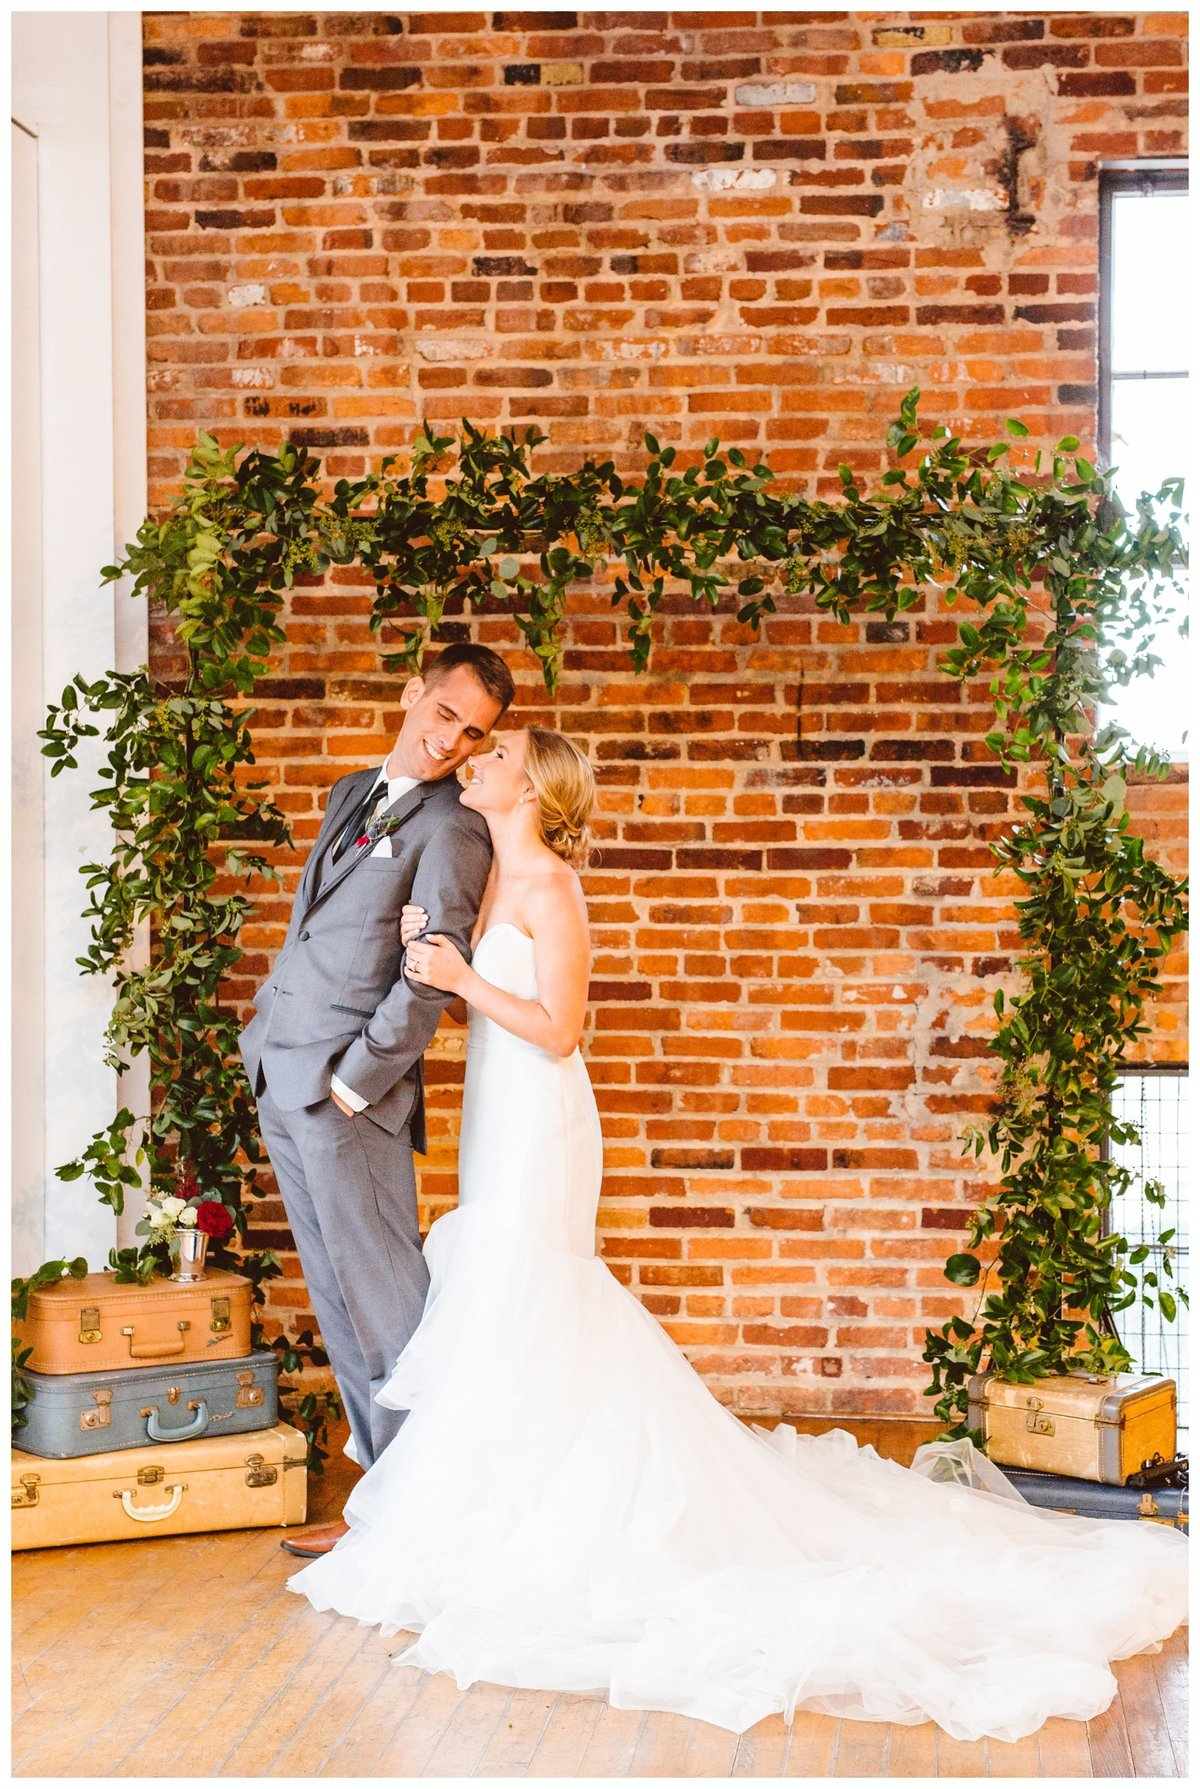 paige-and-bo-loyola-and-avam-baltimore-wedding-brooke-michelle-photography_1145